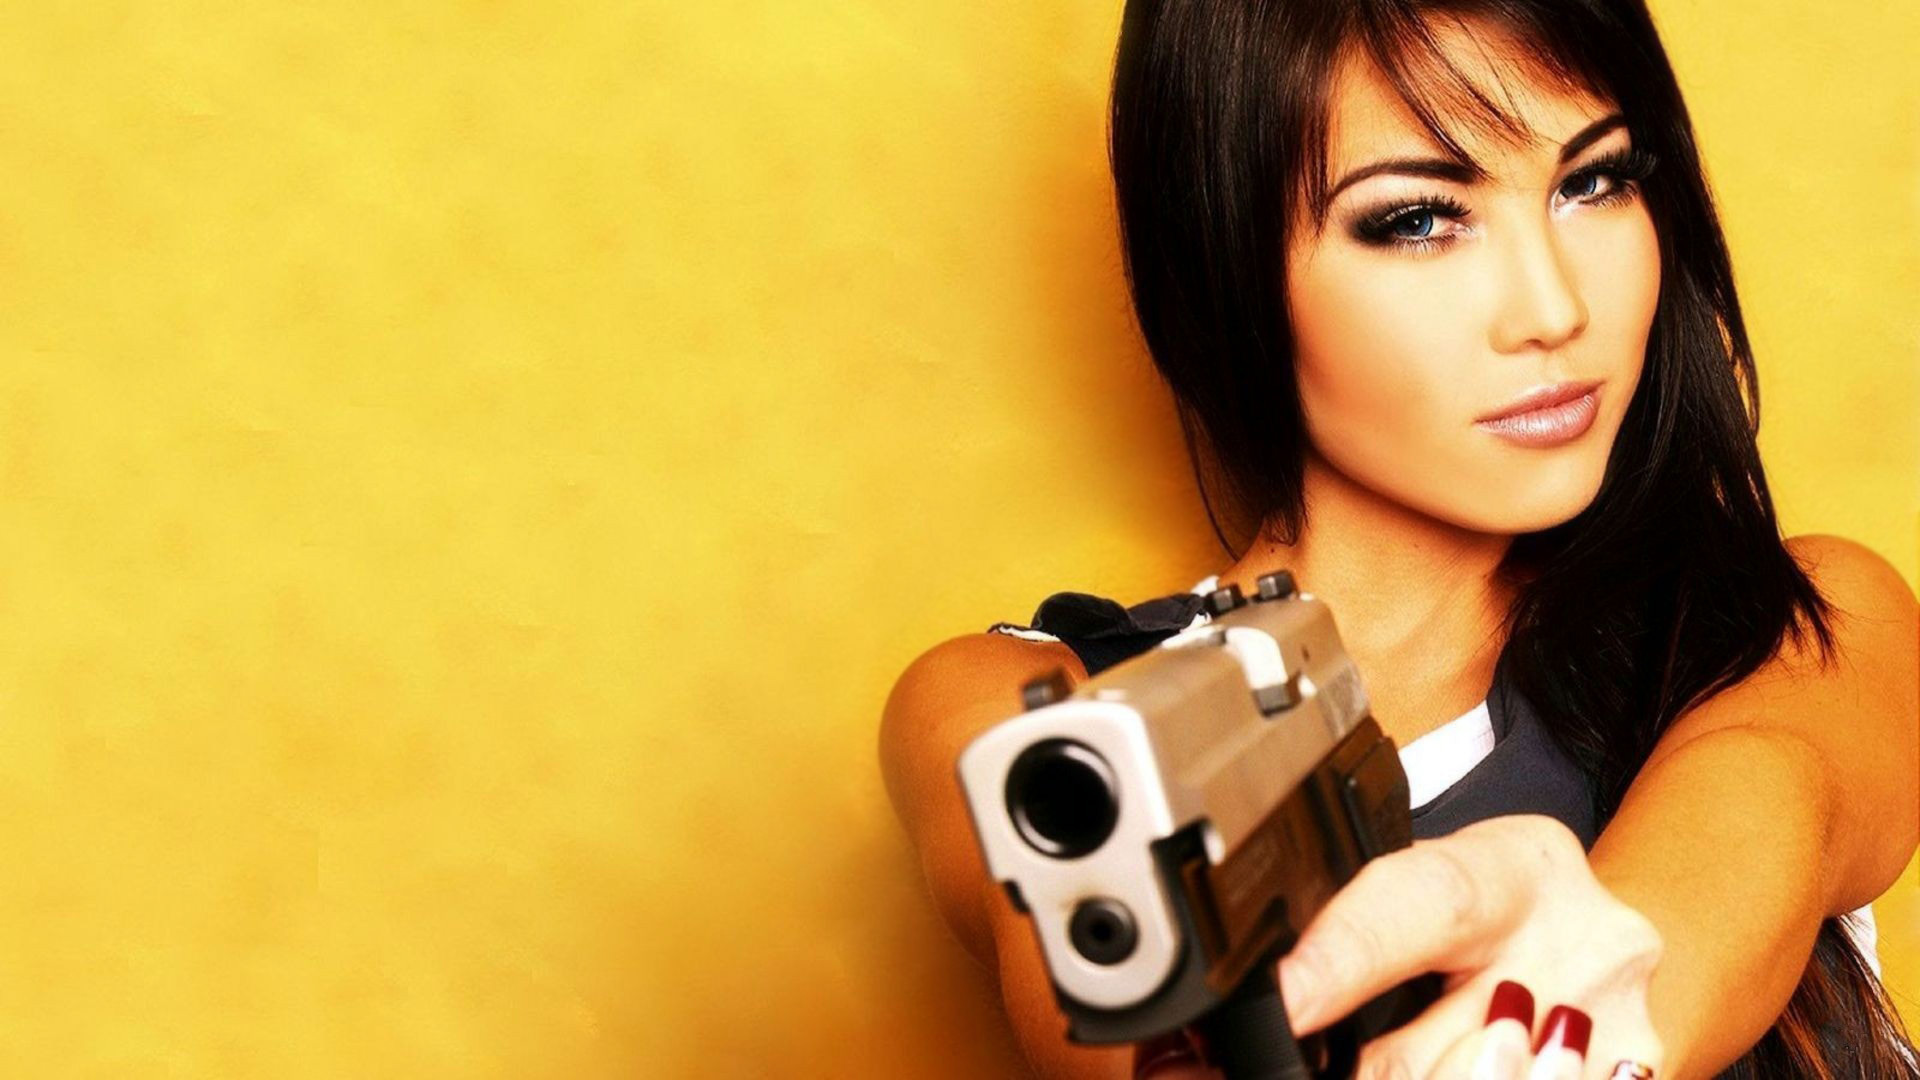 Girls guns full hd wallpaper and background image 1920x1080 women girls guns wallpaper voltagebd Gallery